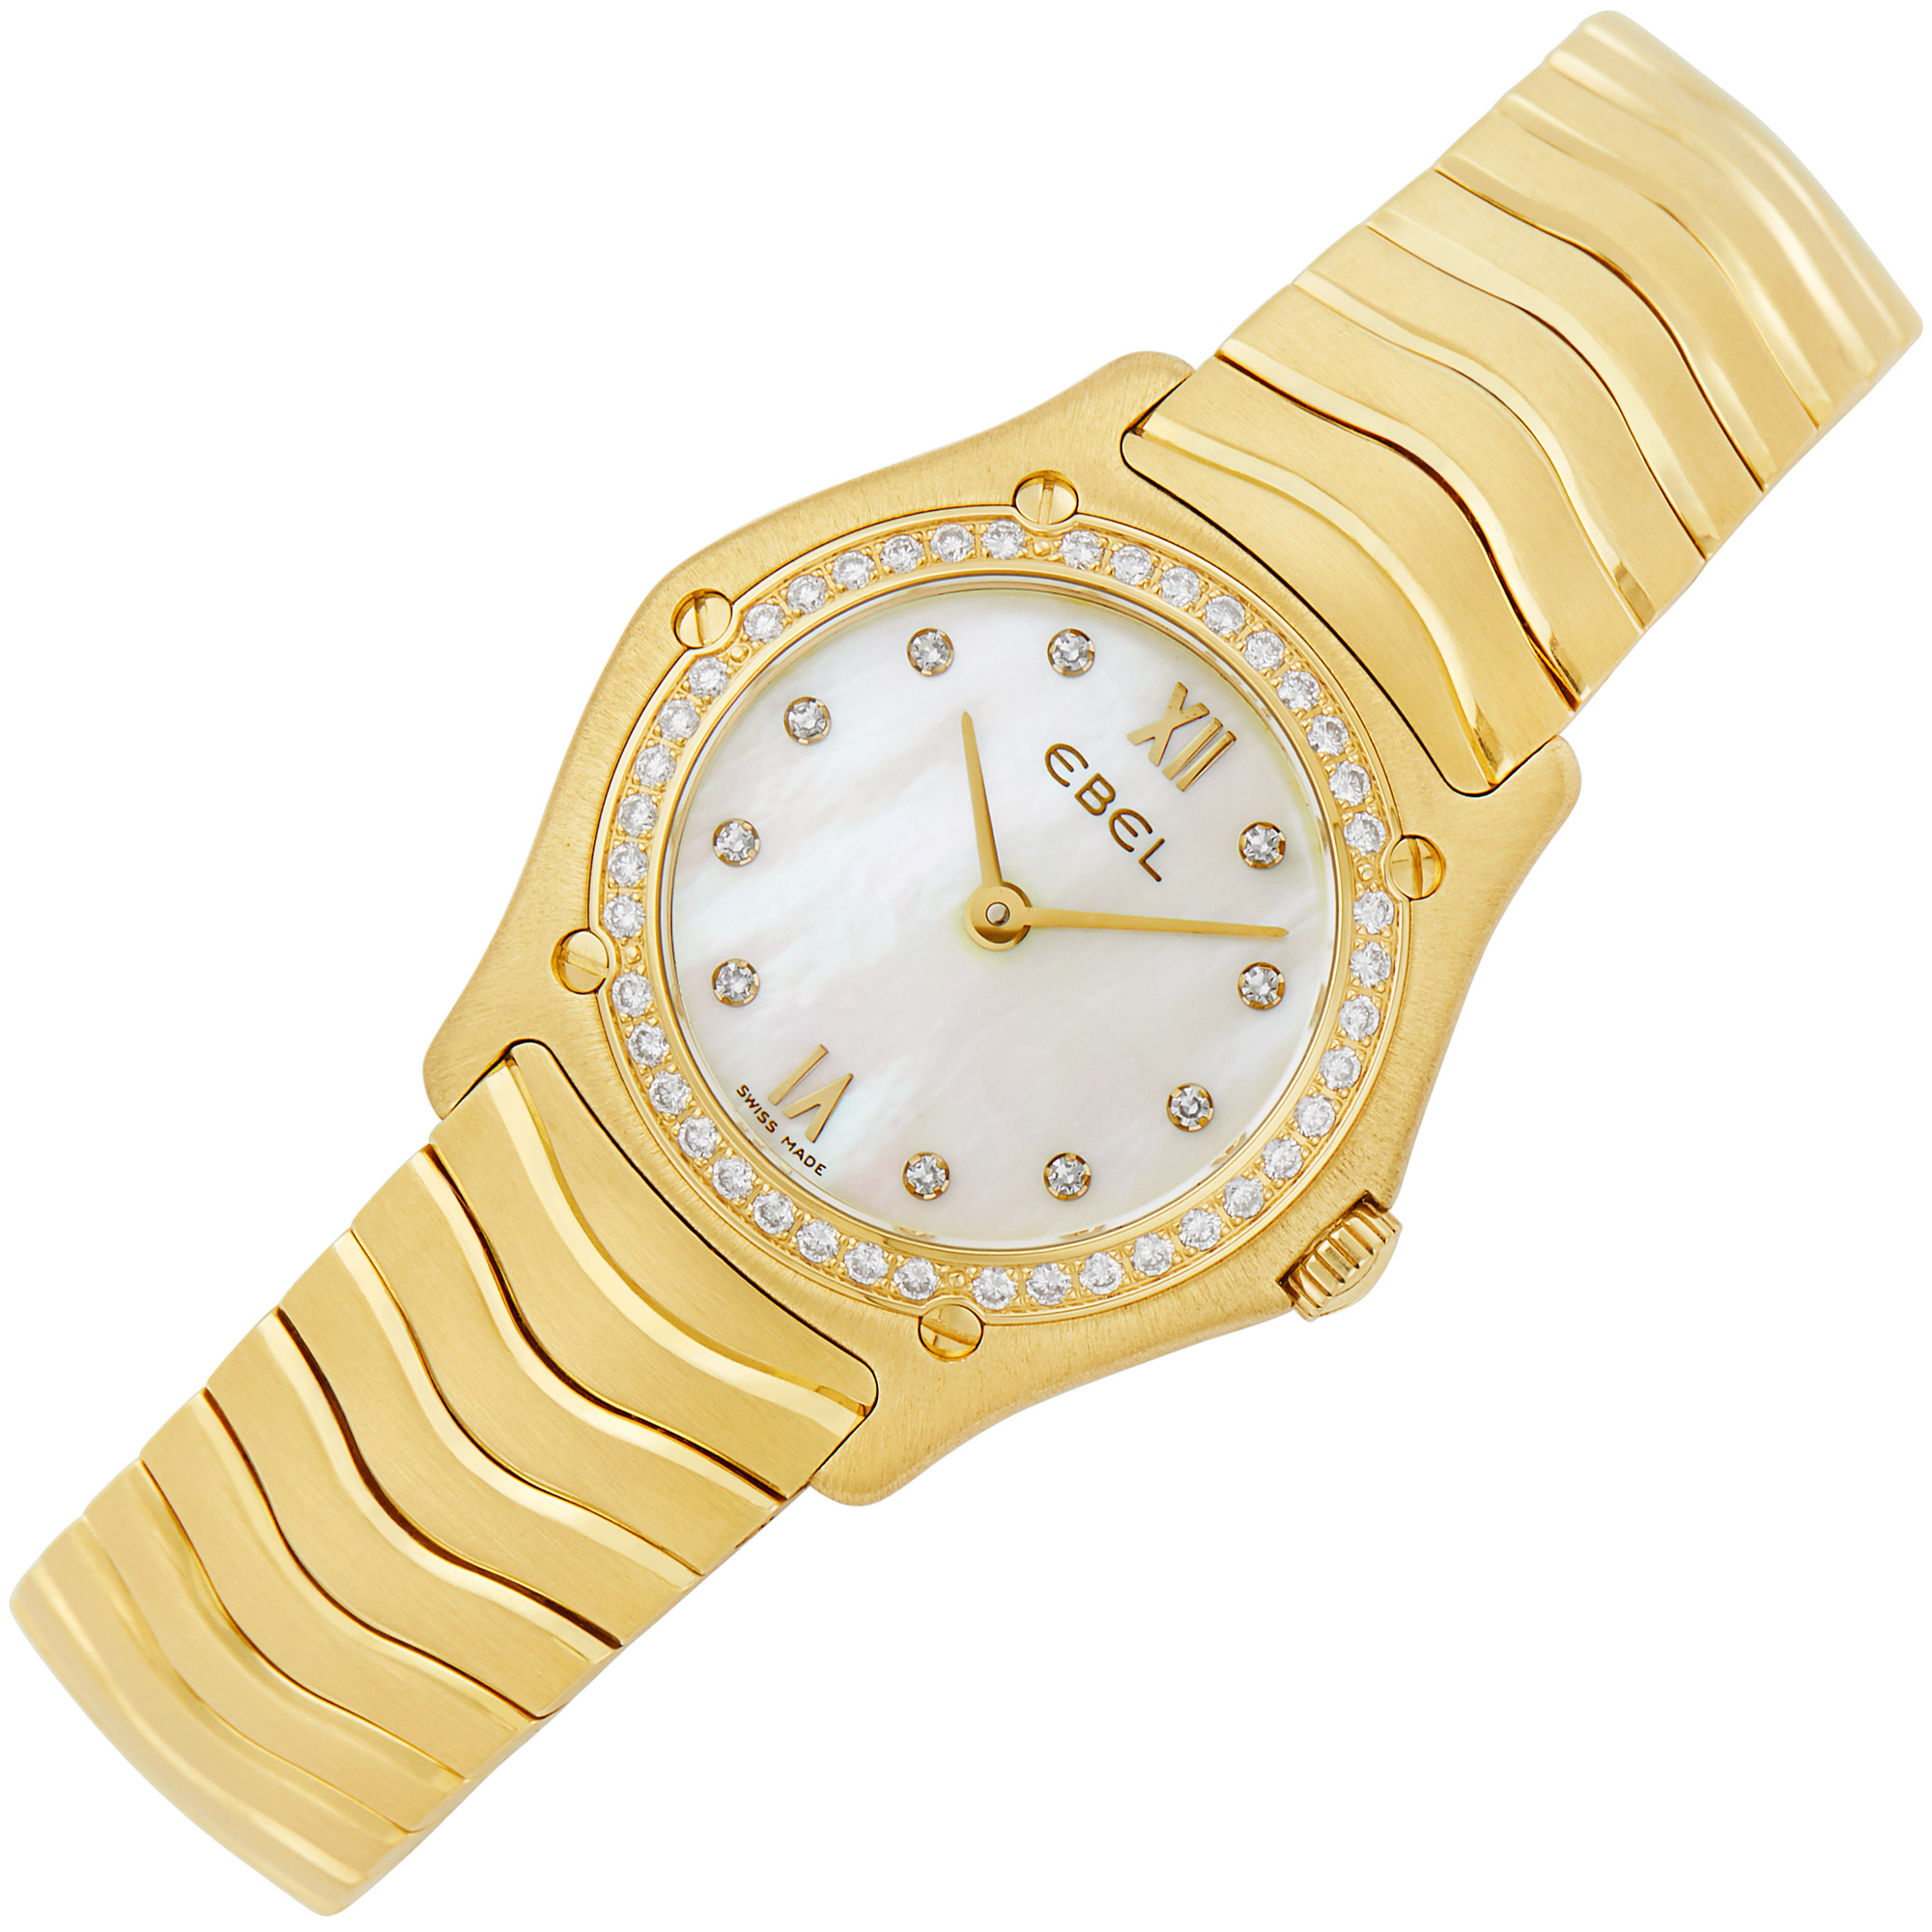 Lot image - Gold, Mother-of-Pearl and Diamond Wave Wristwatch, Ebel